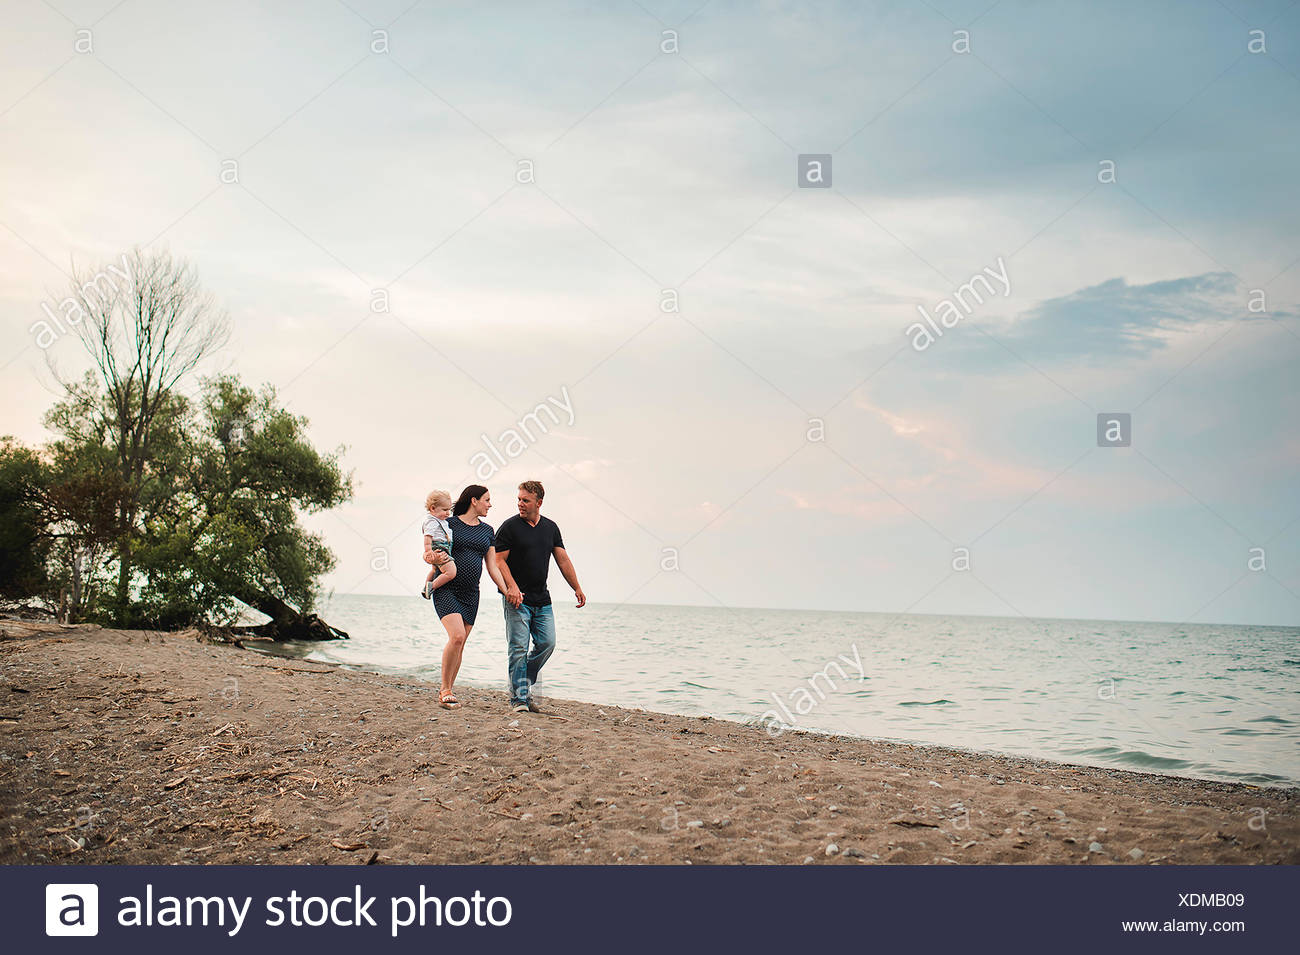 Pregnant couple strolling along beach with male toddler son, Lake Ontario, Canada - Stock Image